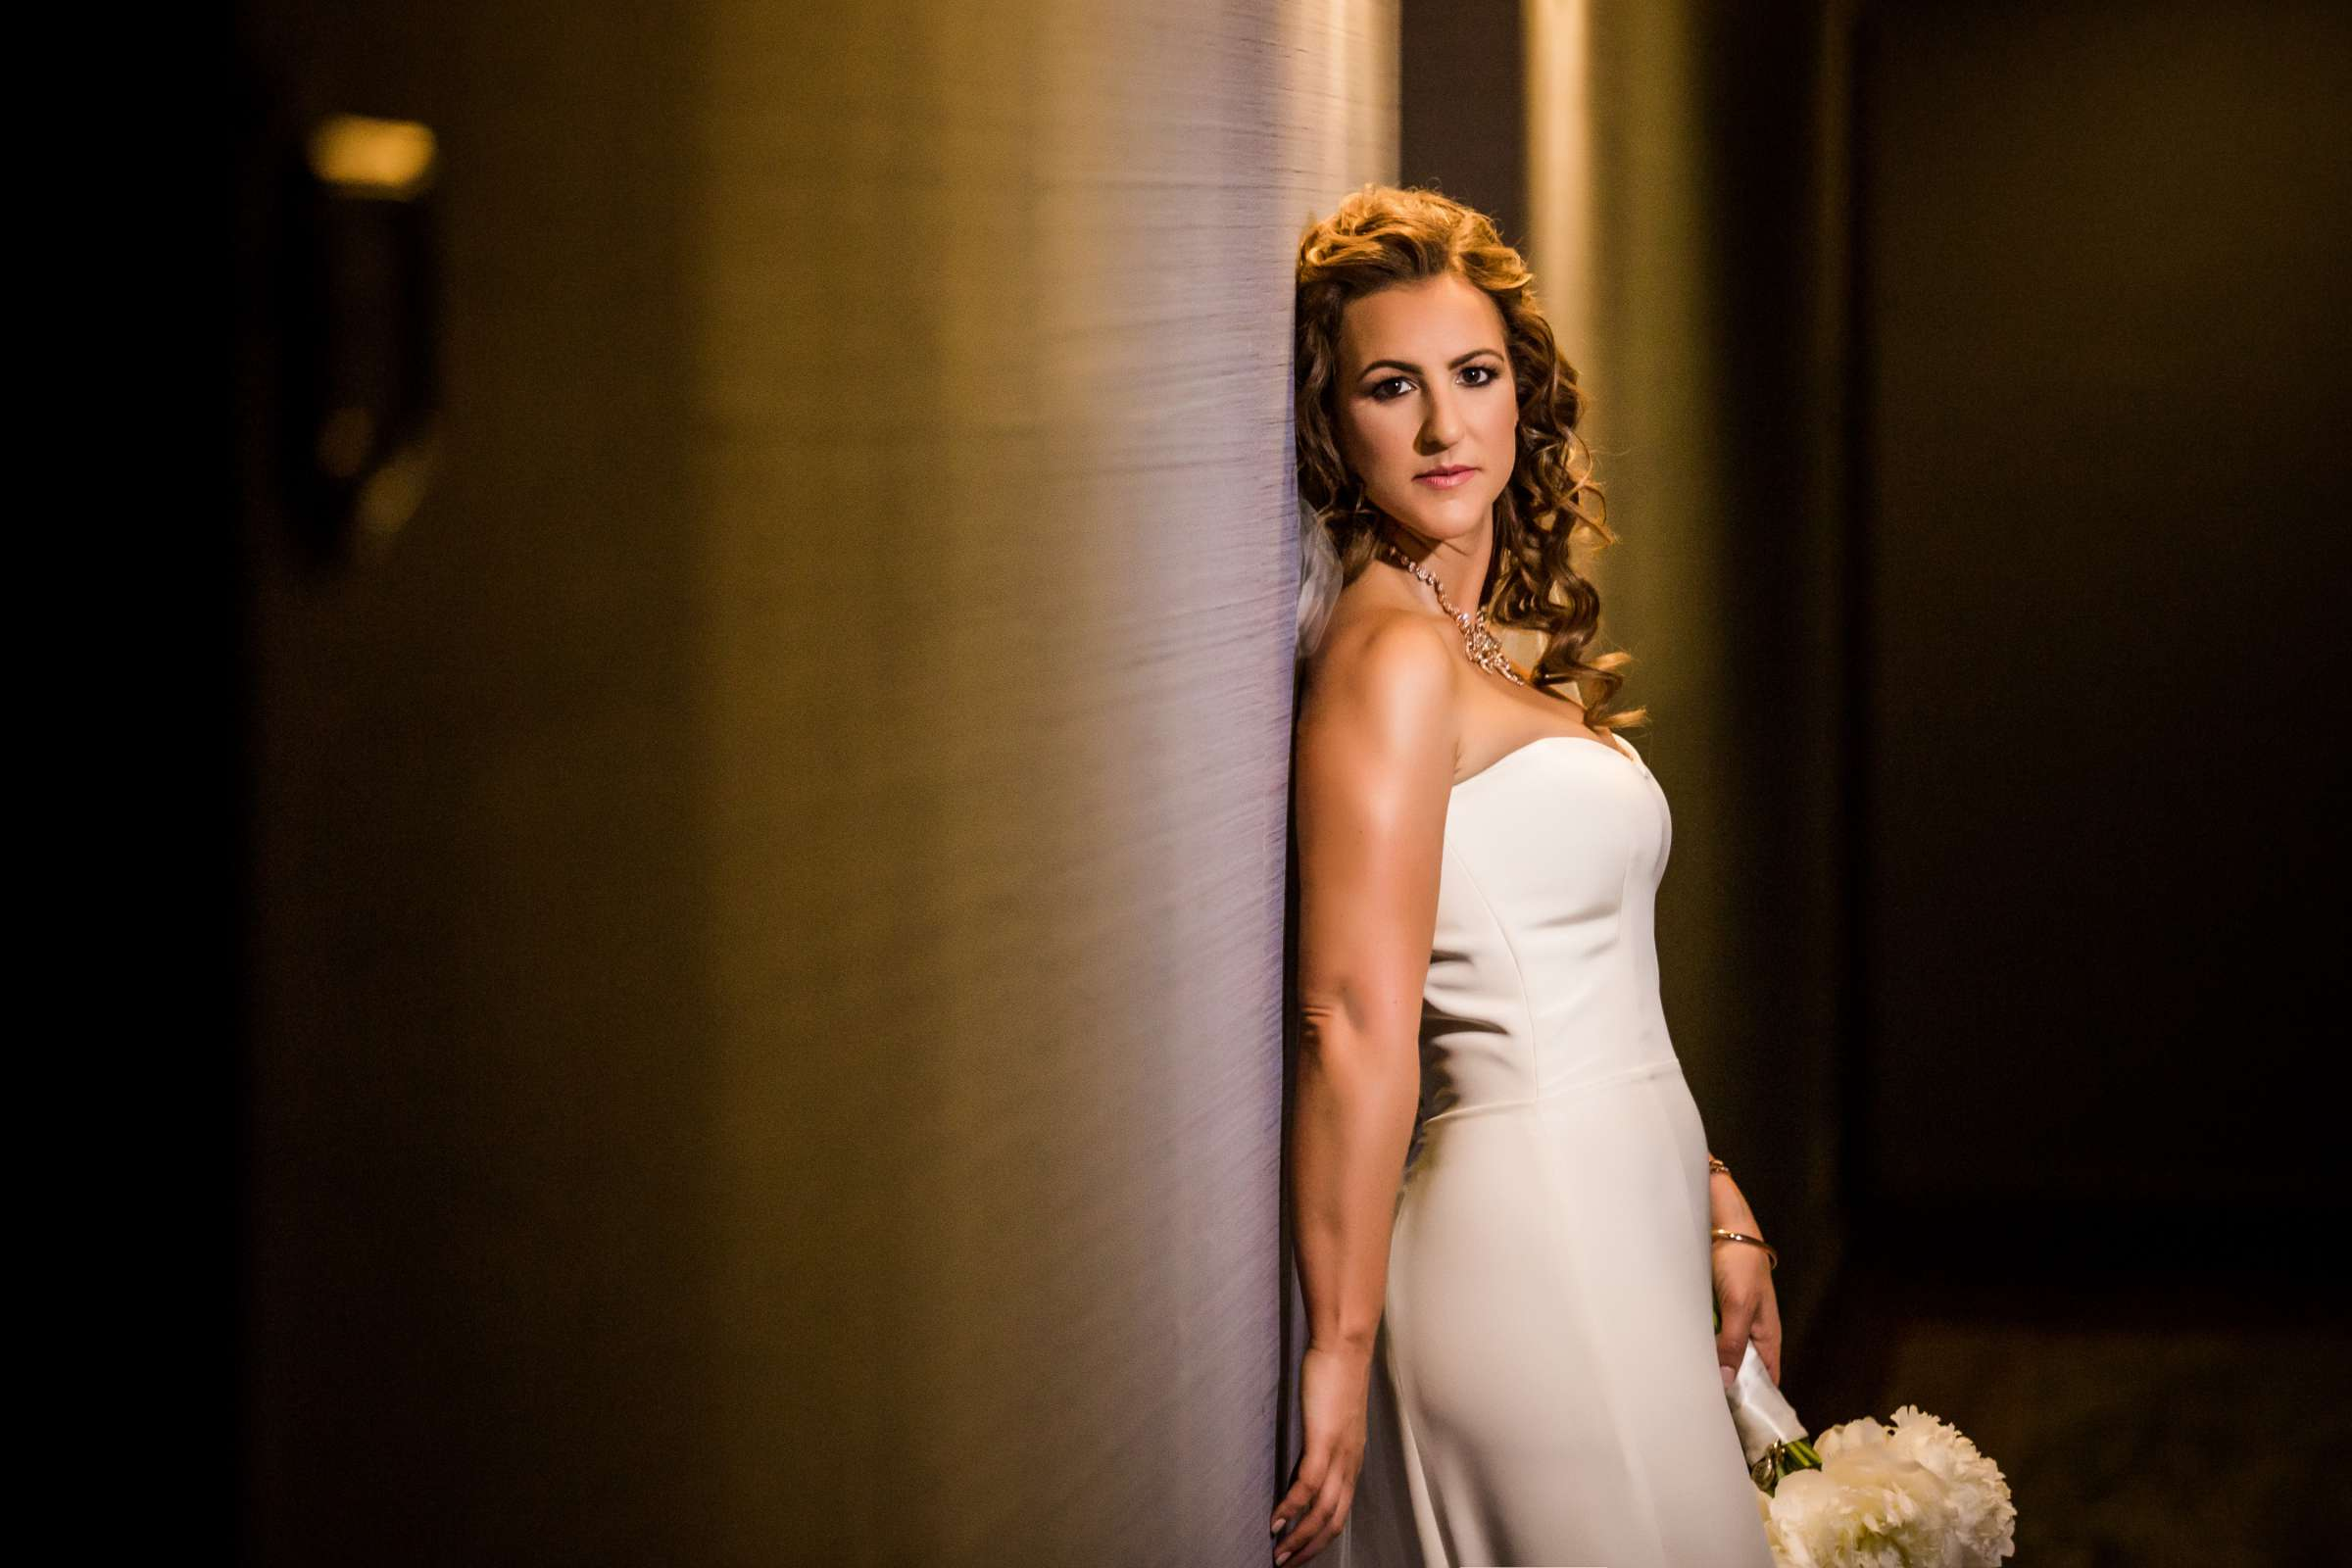 Bride at San Diego Museum of Art Wedding coordinated by First Comes Love Weddings & Events, Ruthie and Larry Wedding Photo #236756 by True Photography